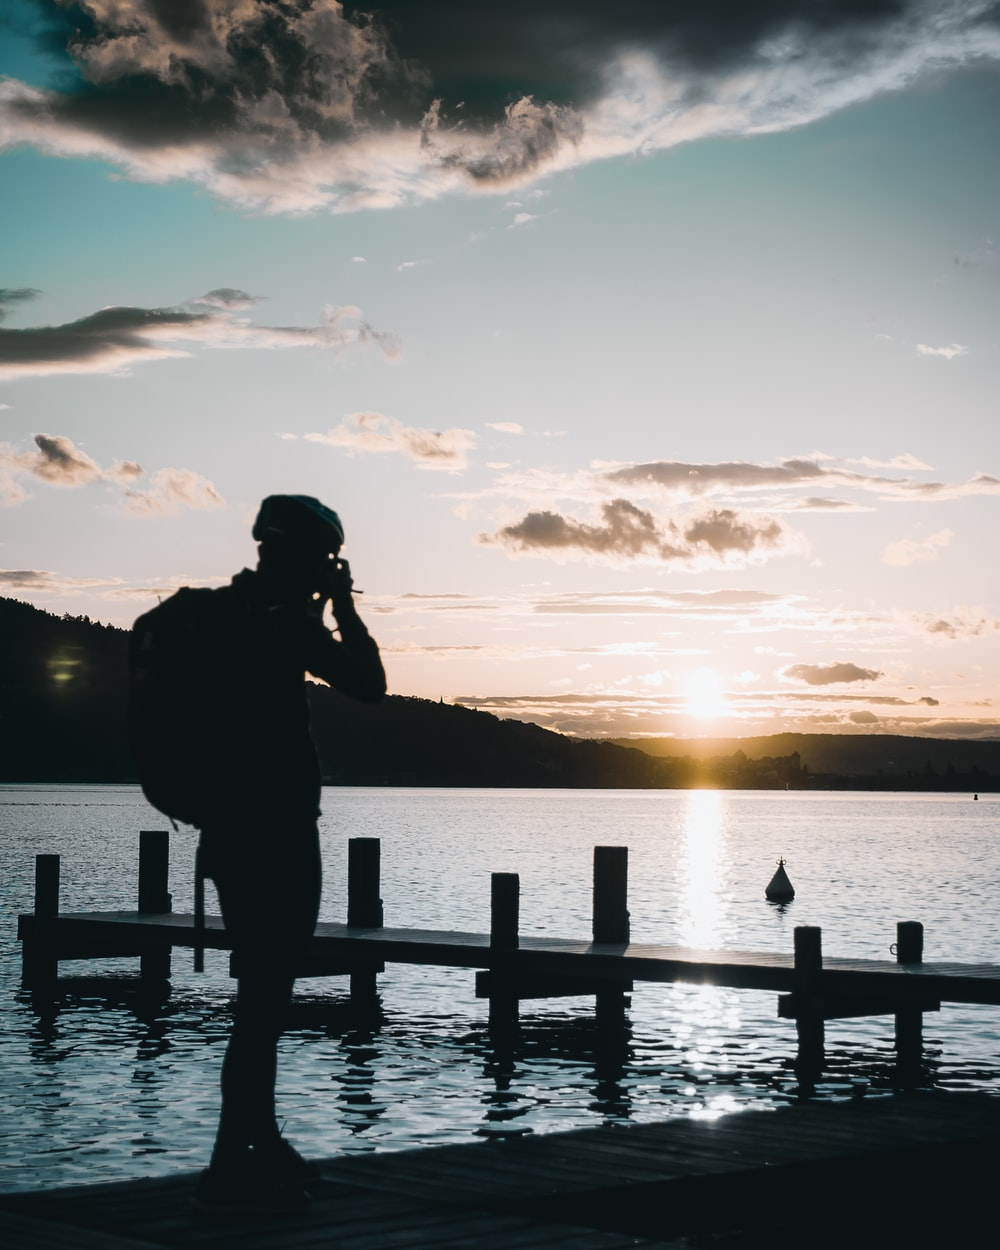 silhouette of person standing near dock during daytime